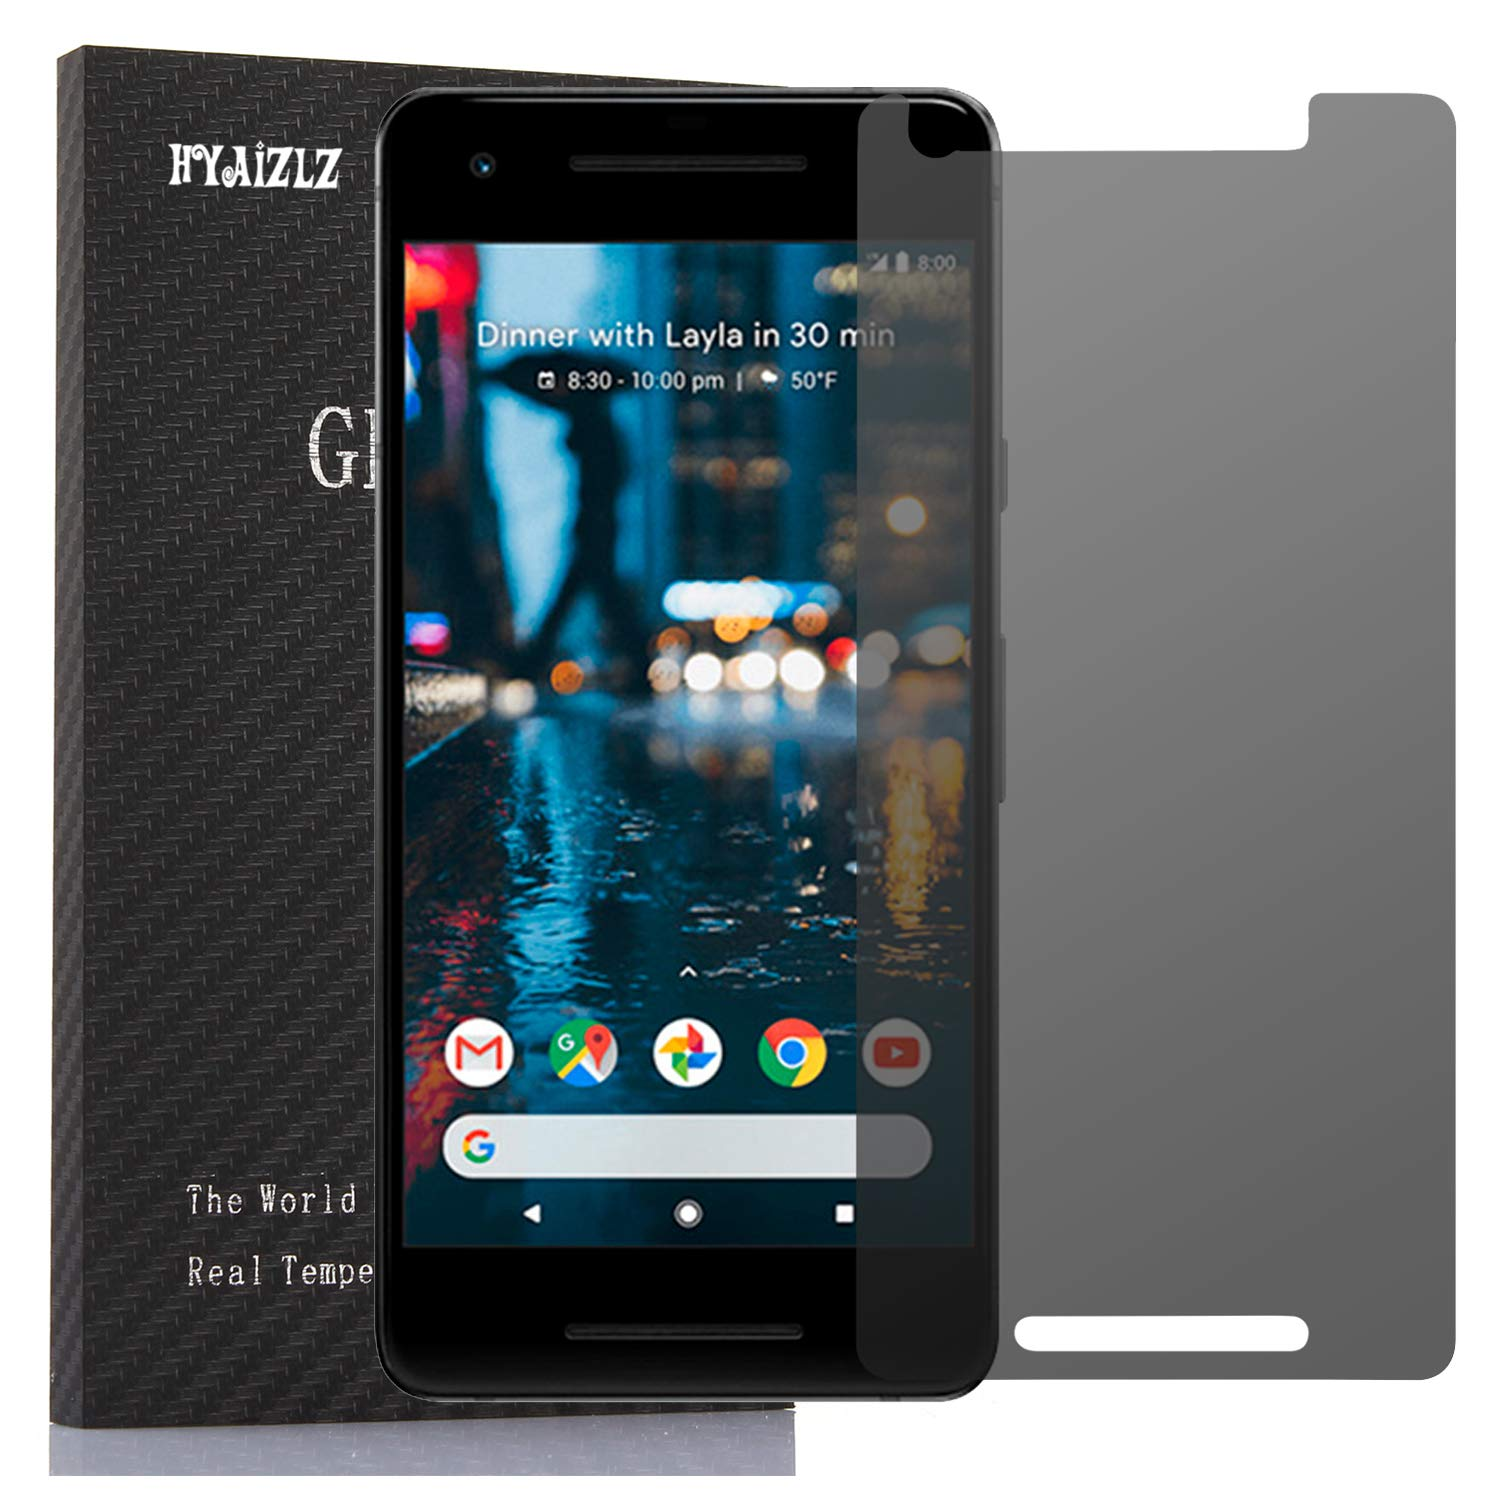 Google Pixel 2 Privacy Screen protector,HYAIZLZ(TM)2pcs Anti-Spy Screen  Protector Shield For Google Pixel 2 5 0 inch